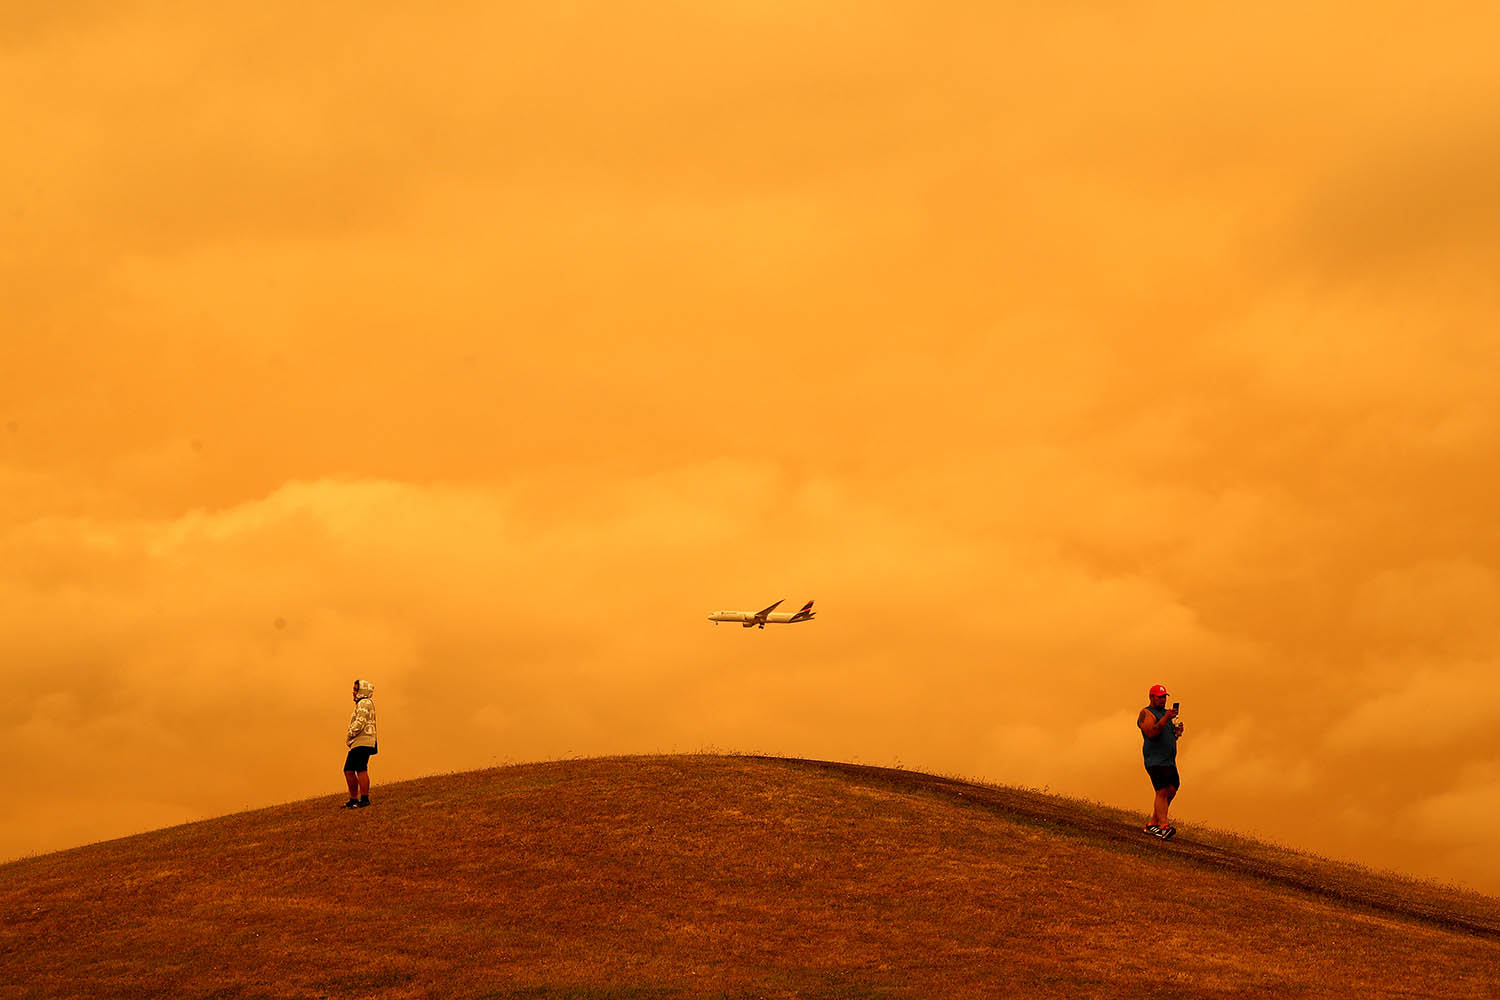 A plane flies through orange skies from the Australian fires over Manukau as seen from Totara Park in Auckland, New Zealand, on Jan. 5. Phil Walter/Getty Images